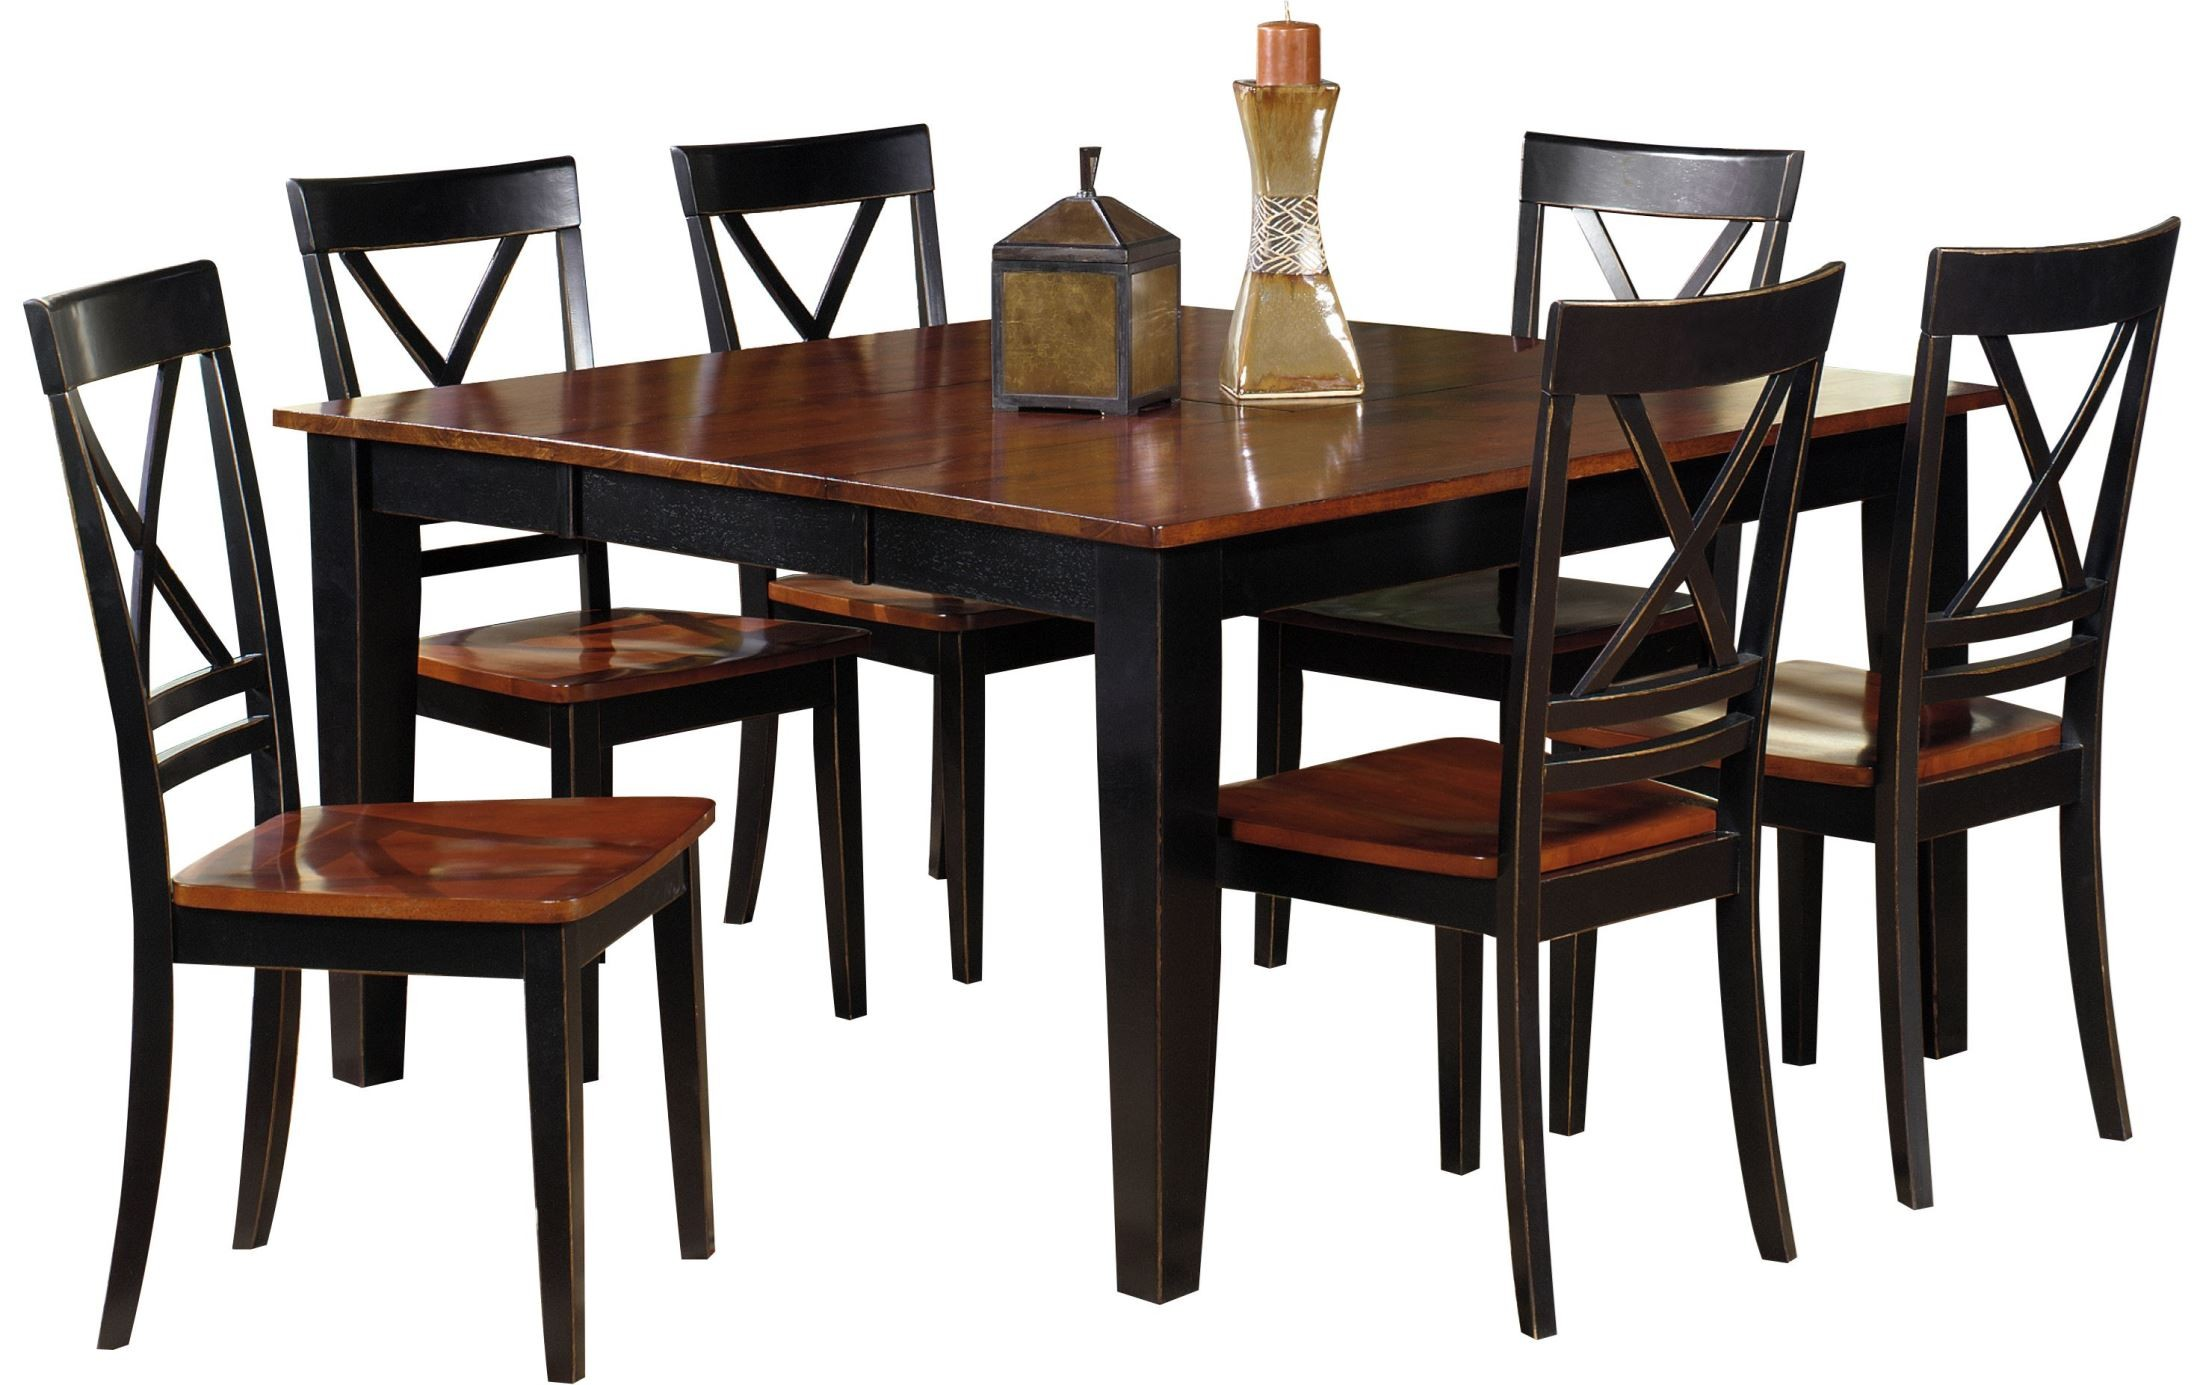 cosmo unique and durable dining room set p809 10b 10t